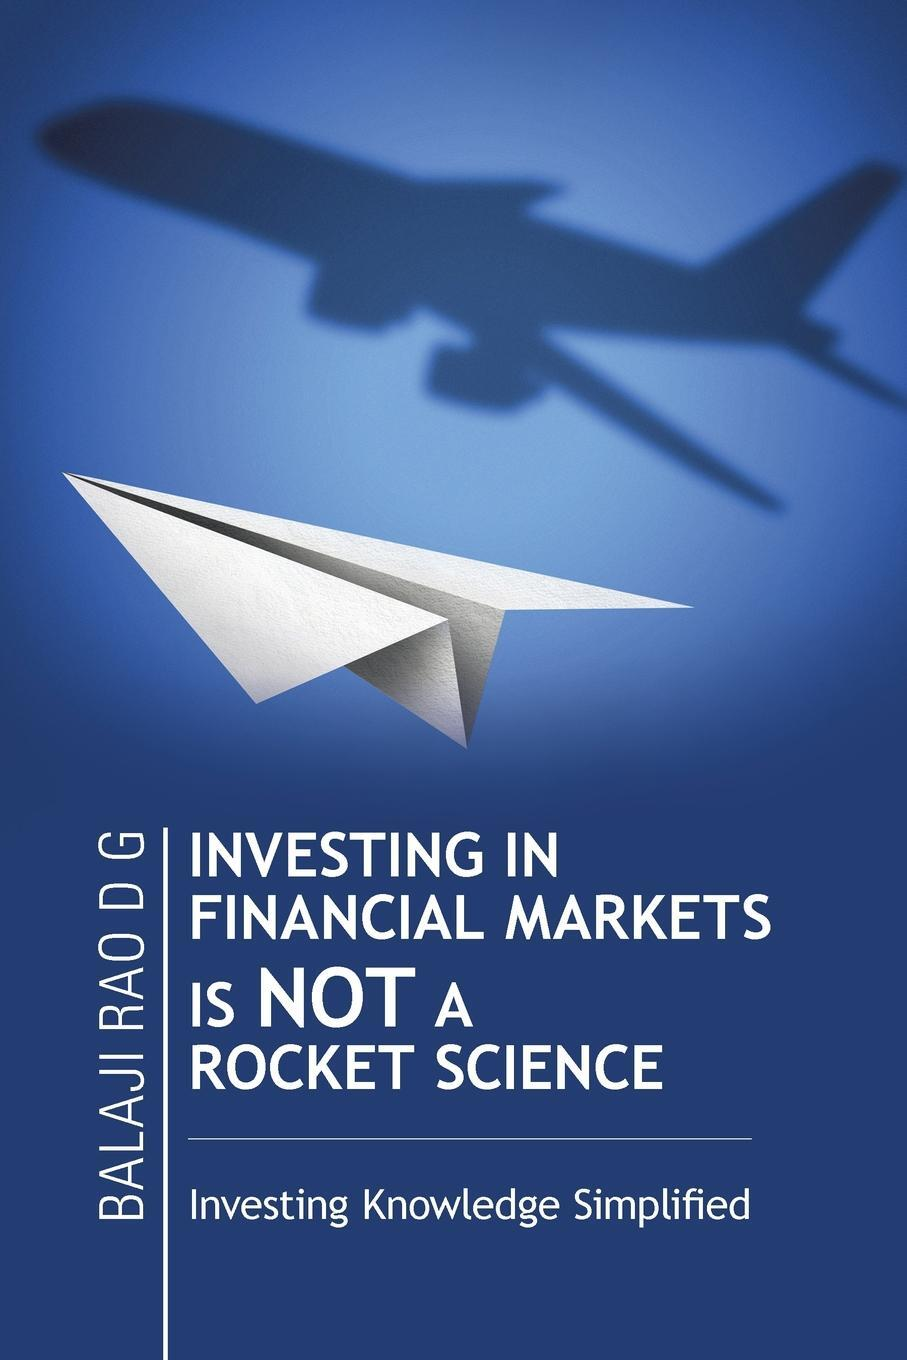 INVESTING IN FINANCIAL MARKETS IS NOT A ROCKET SCIENCE. Investing Knowledge Simplified